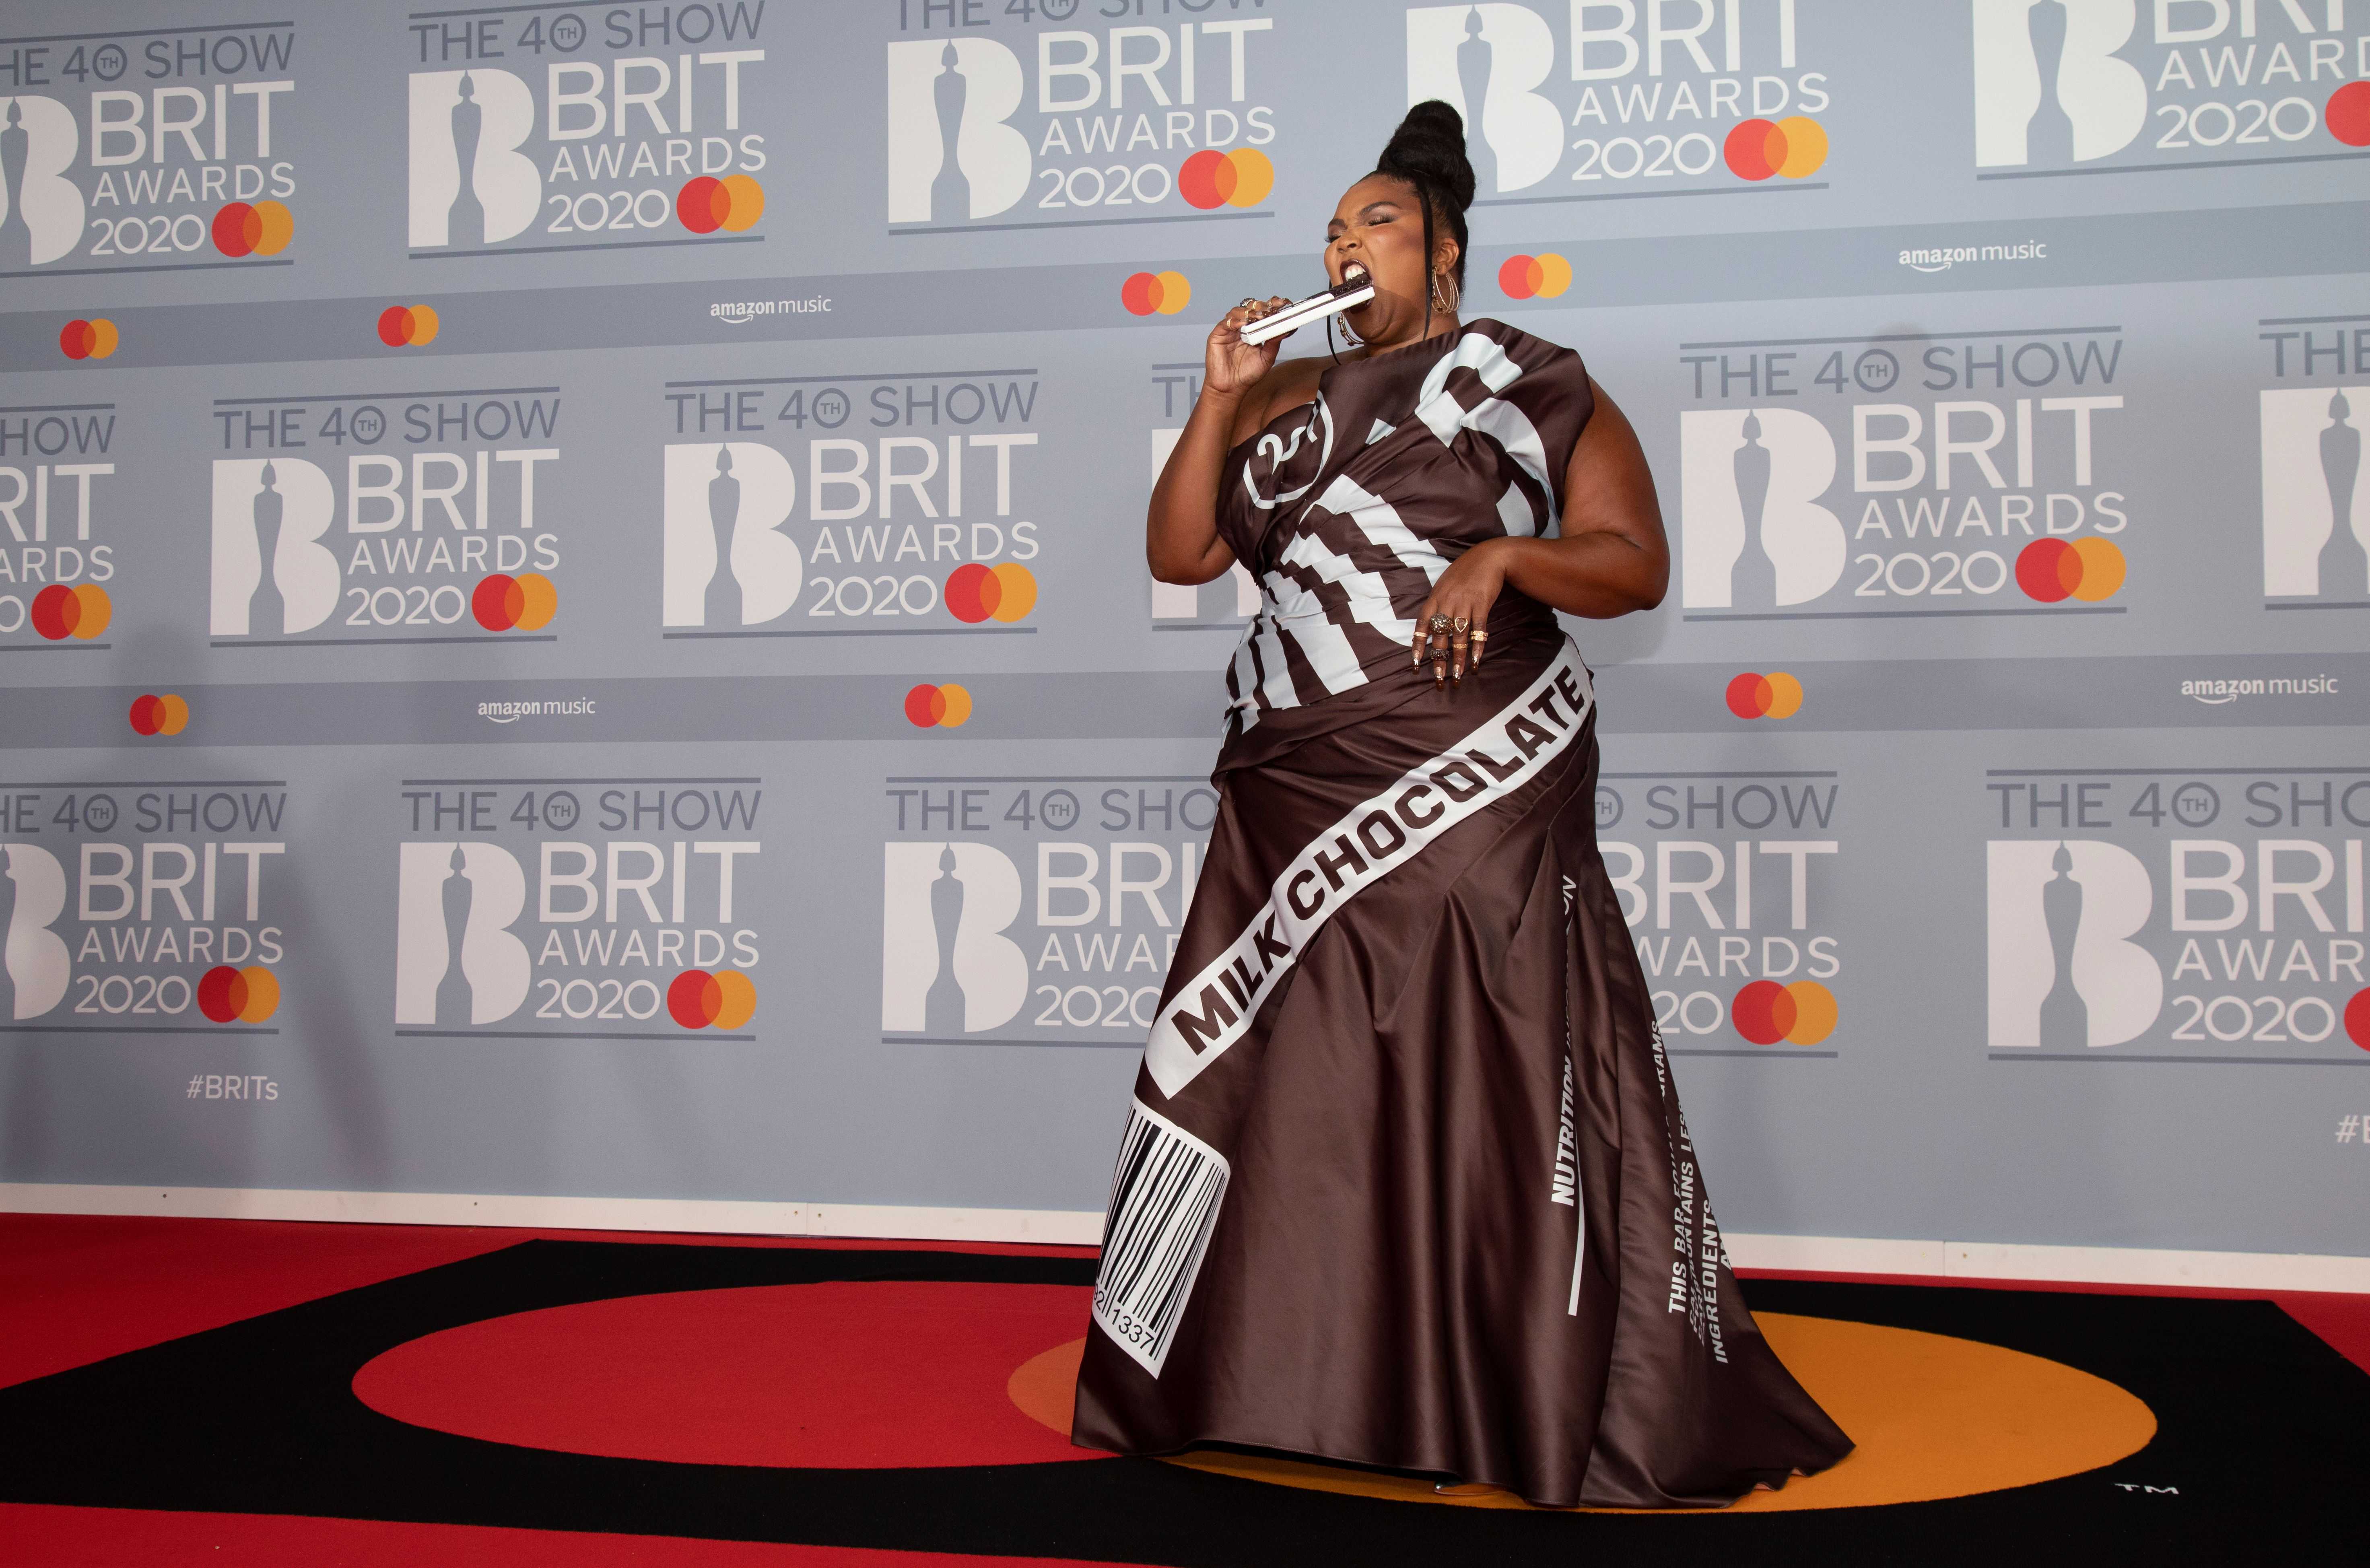 2020 Brit Awards Red Carpet: Lizzo in Moschino